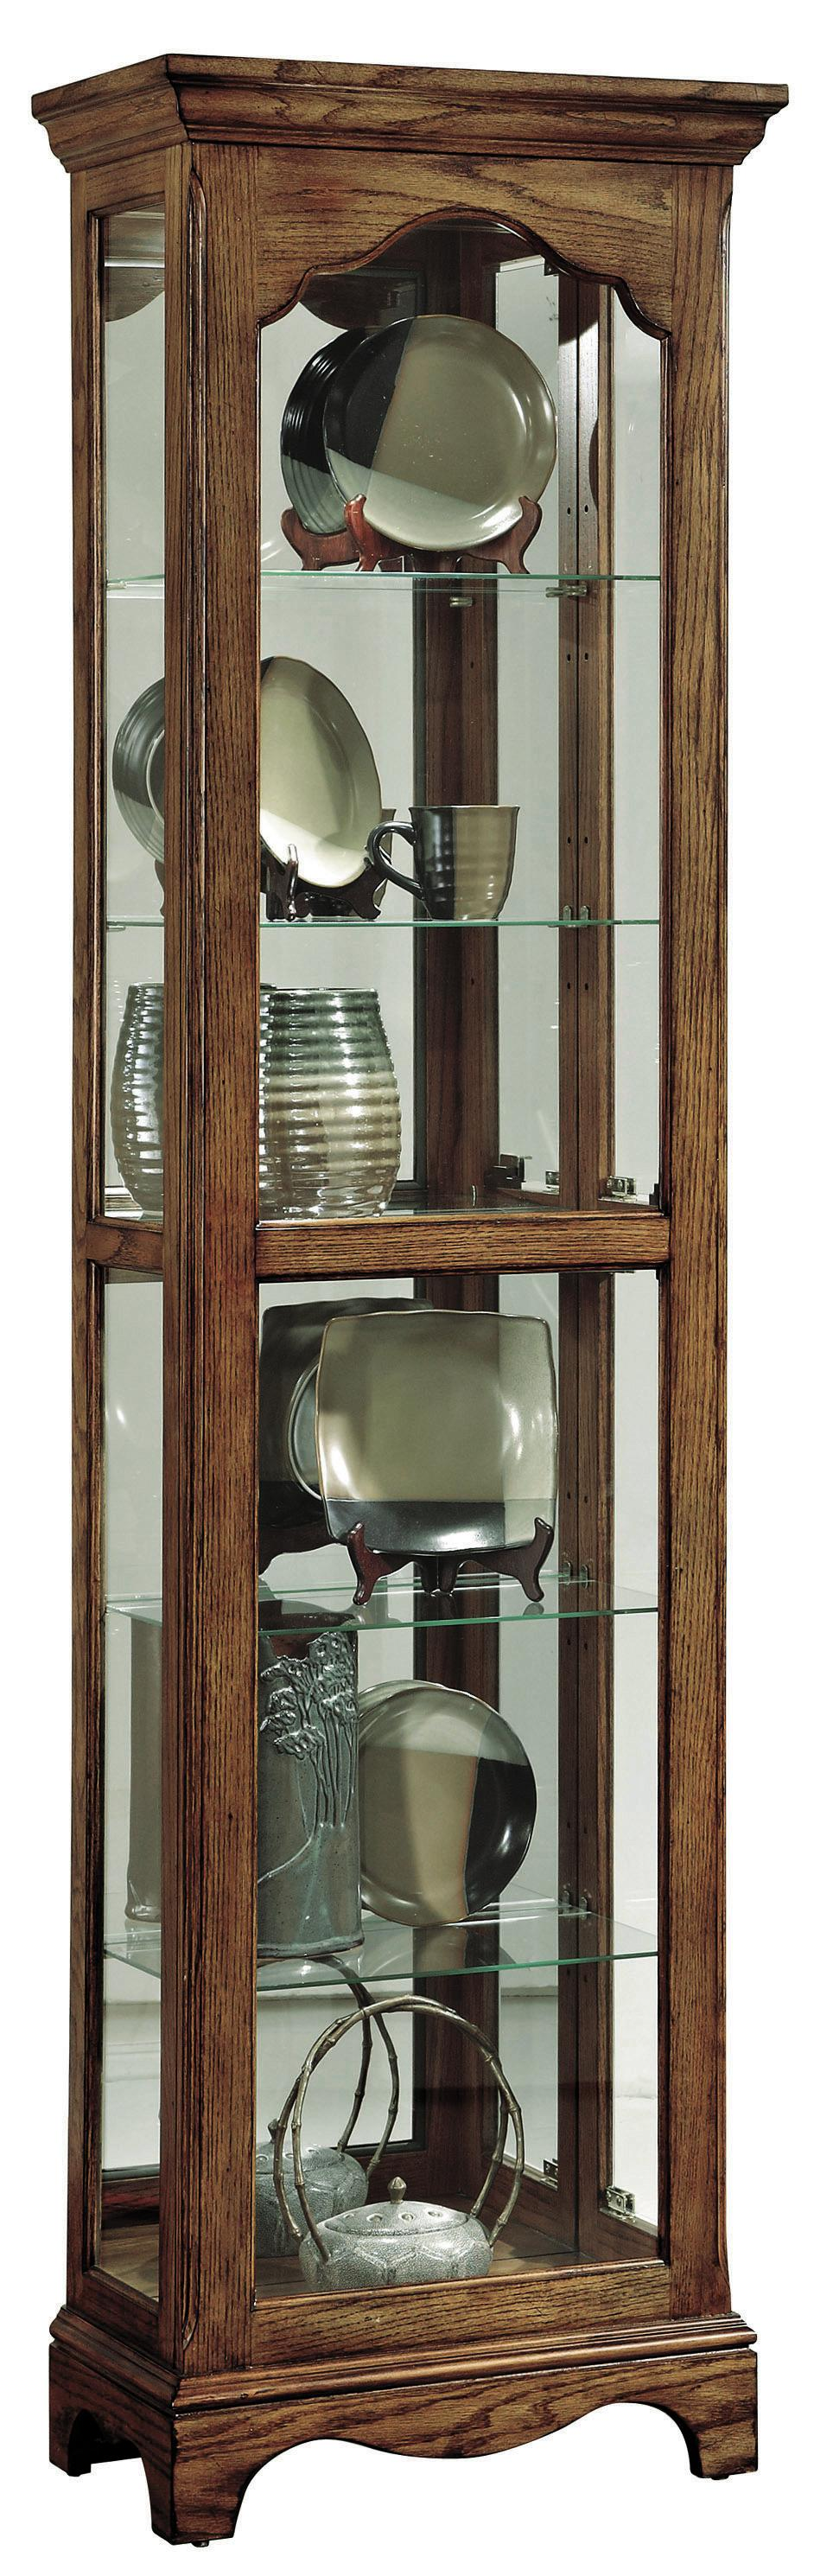 Pulaski Furniture Curios Curio Cabinet - Item Number: 21485